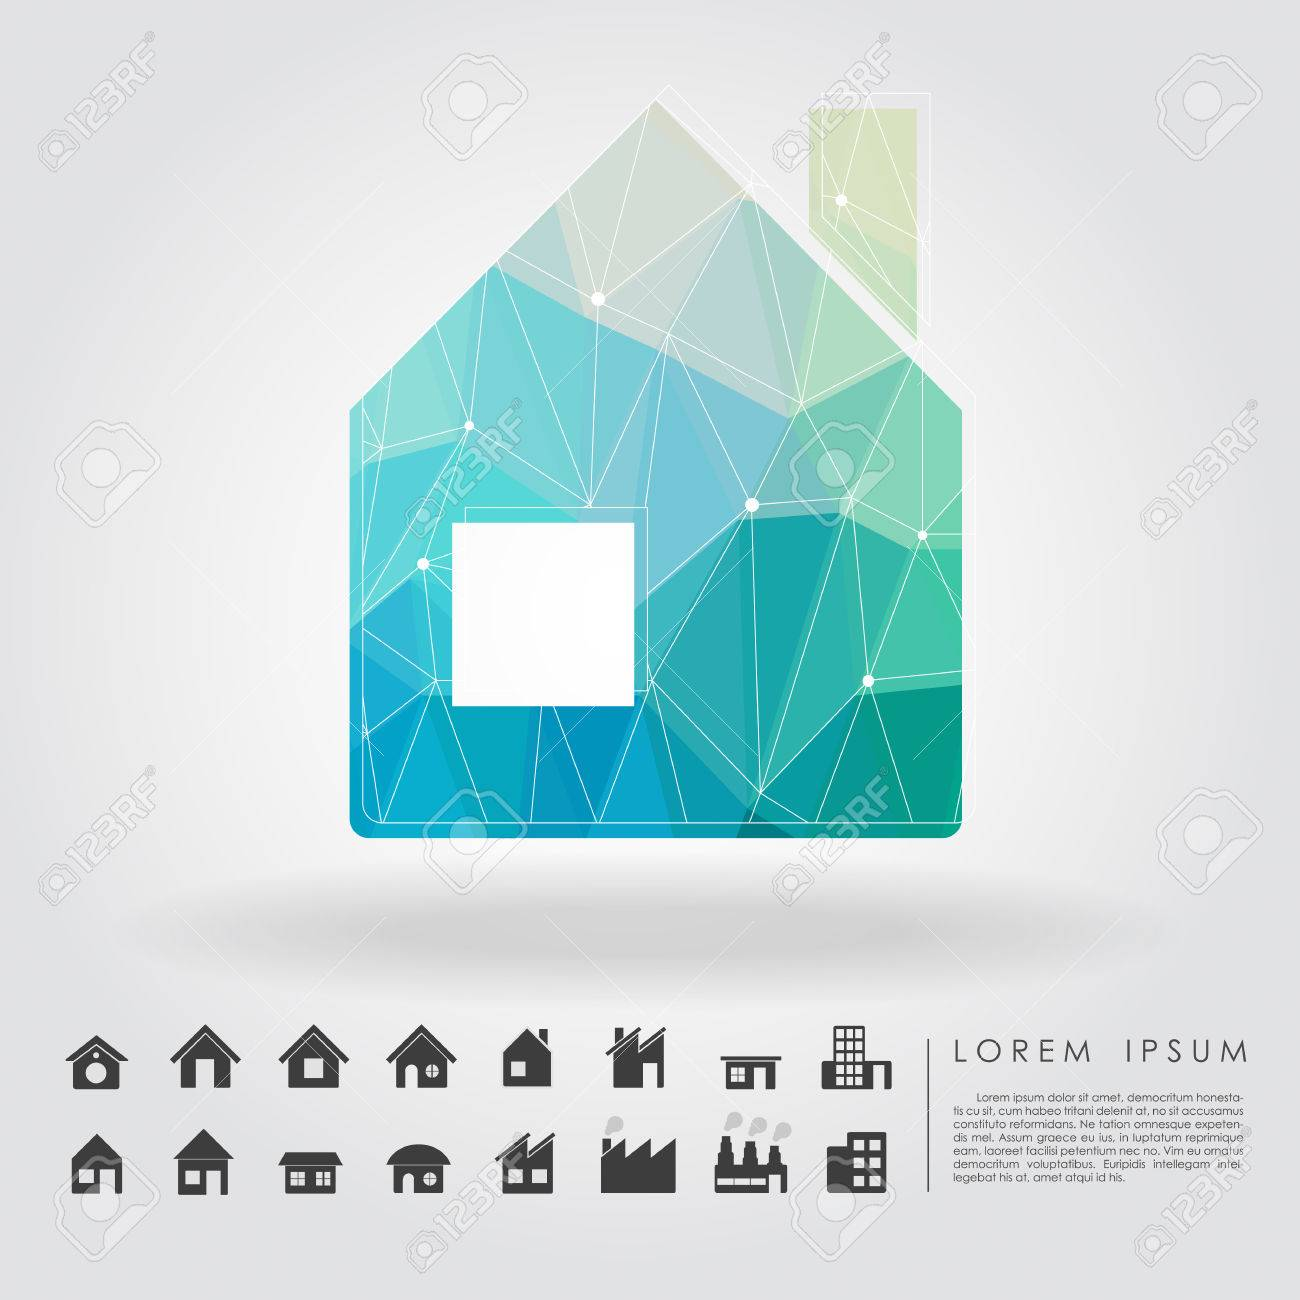 Polygon house symbol with building icon royalty free cliparts polygon house symbol with building icon stock vector 27247892 biocorpaavc Image collections